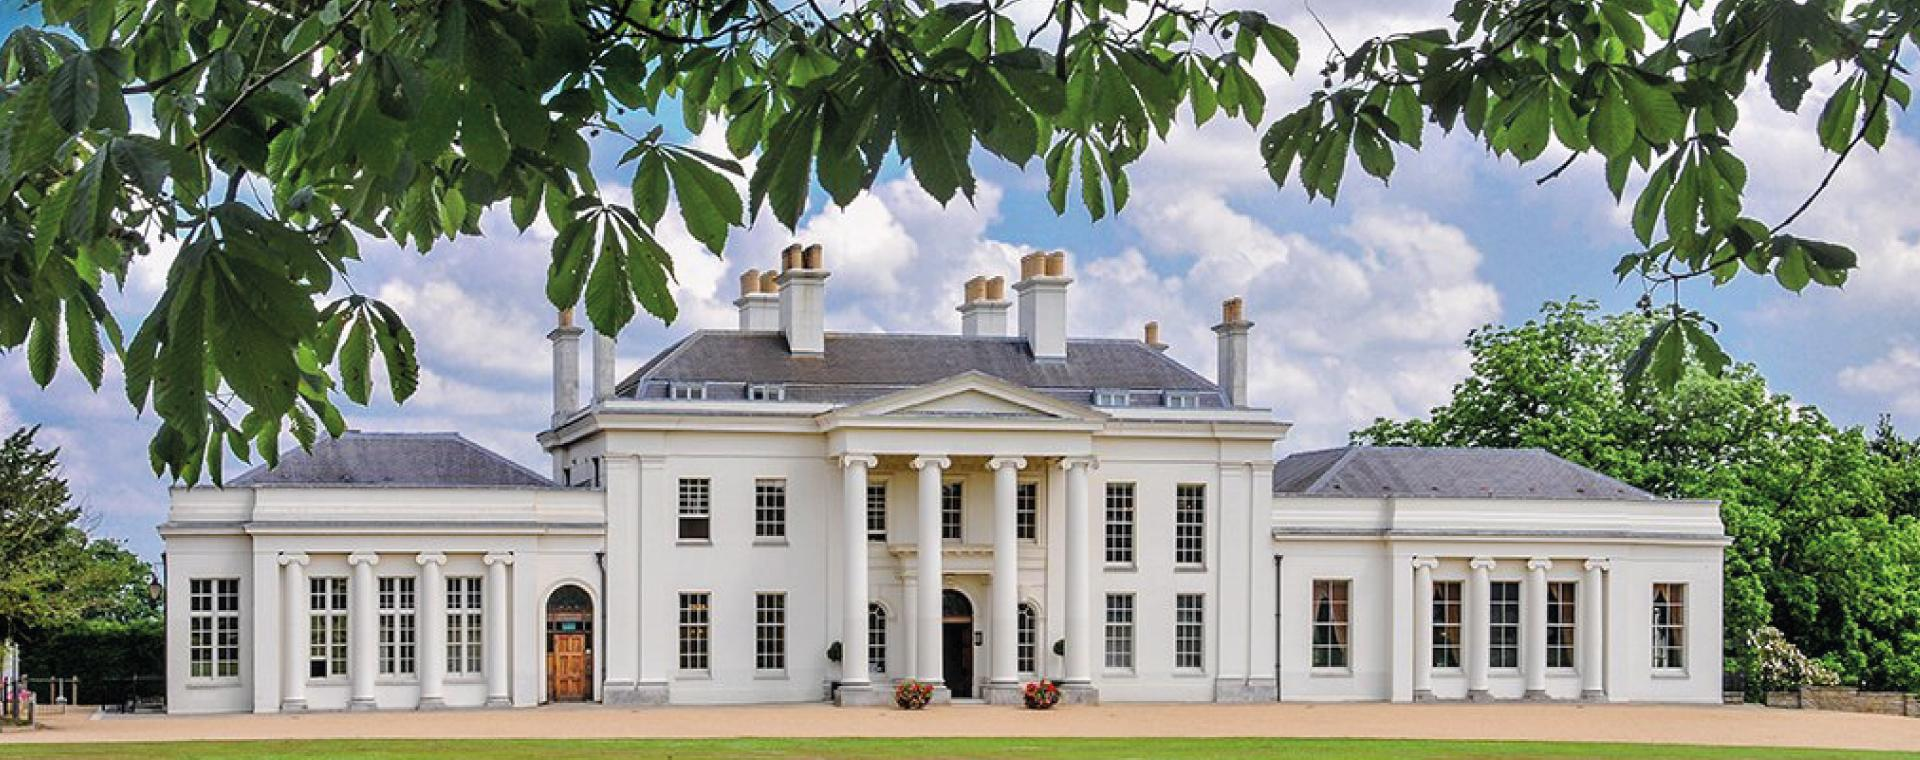 One Day photography workshops at Hylands Estate Events